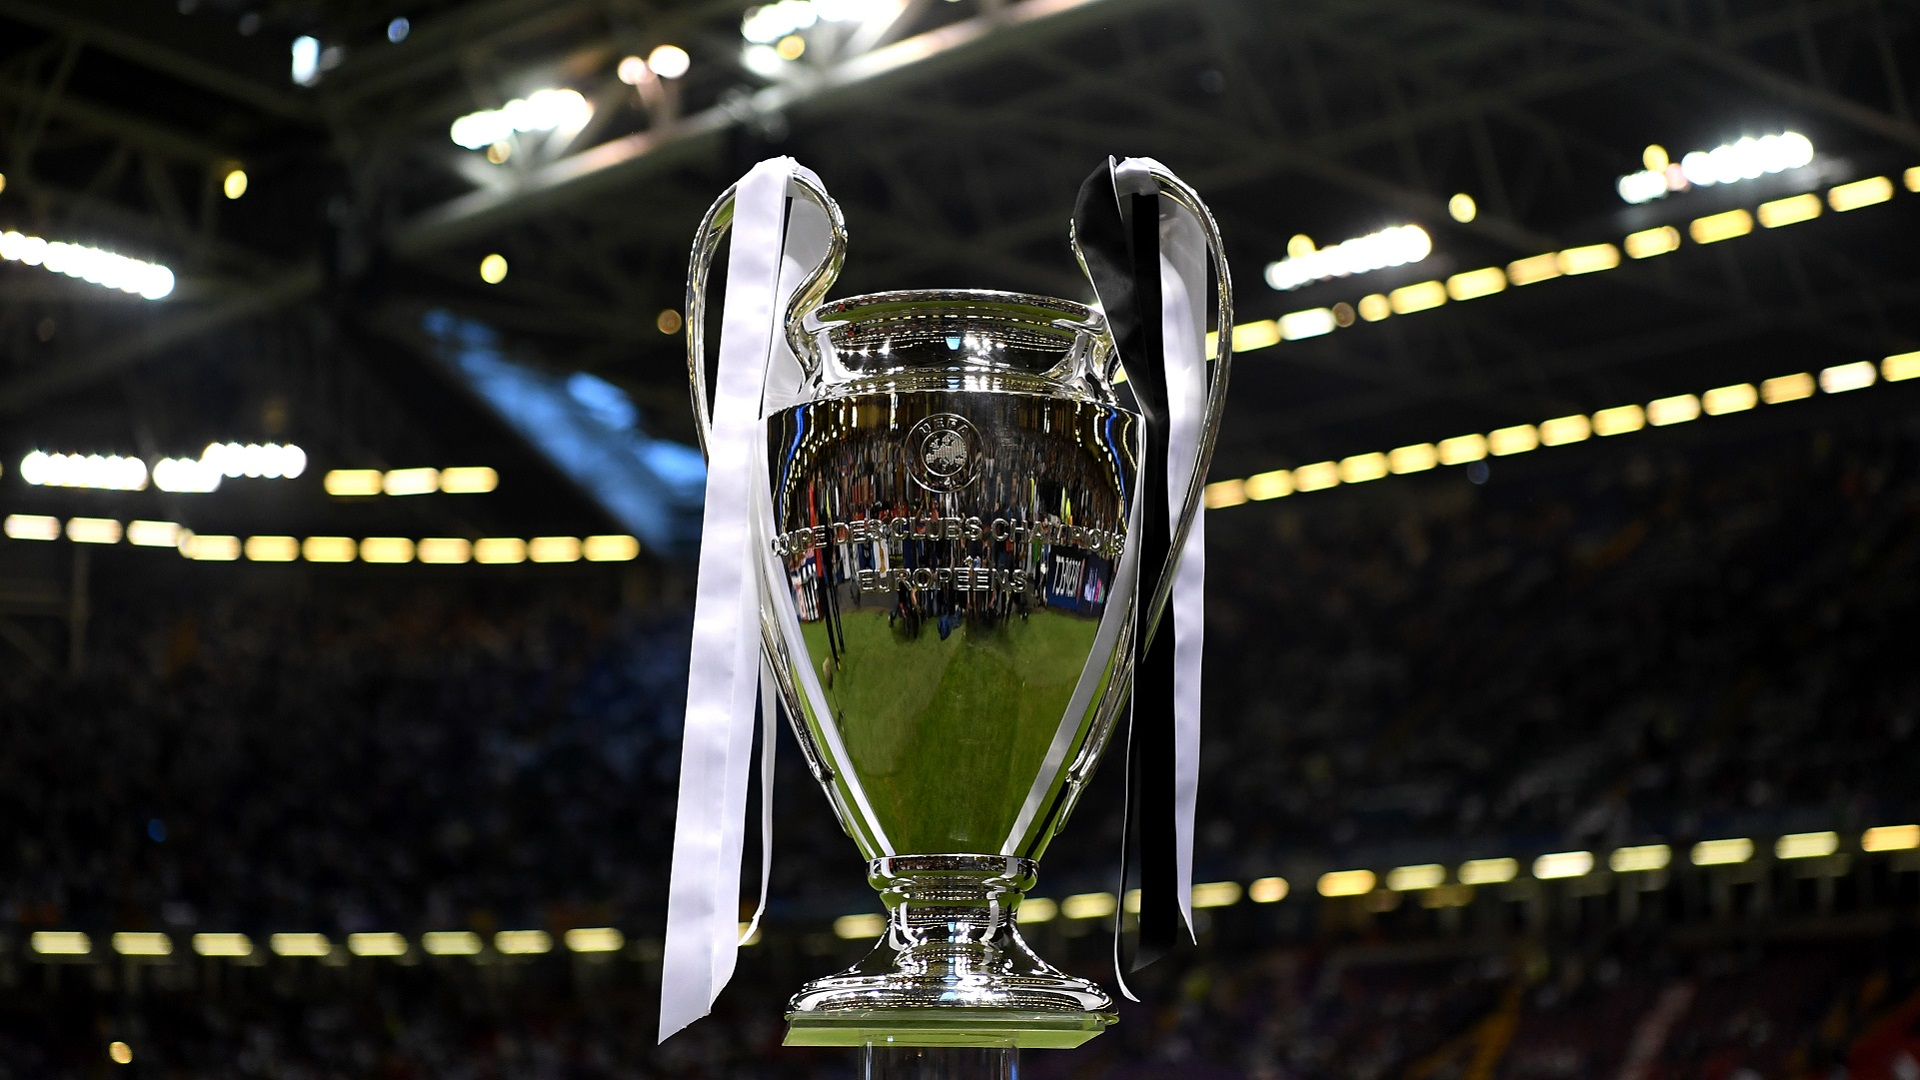 2017-08-04 Champions league trophy